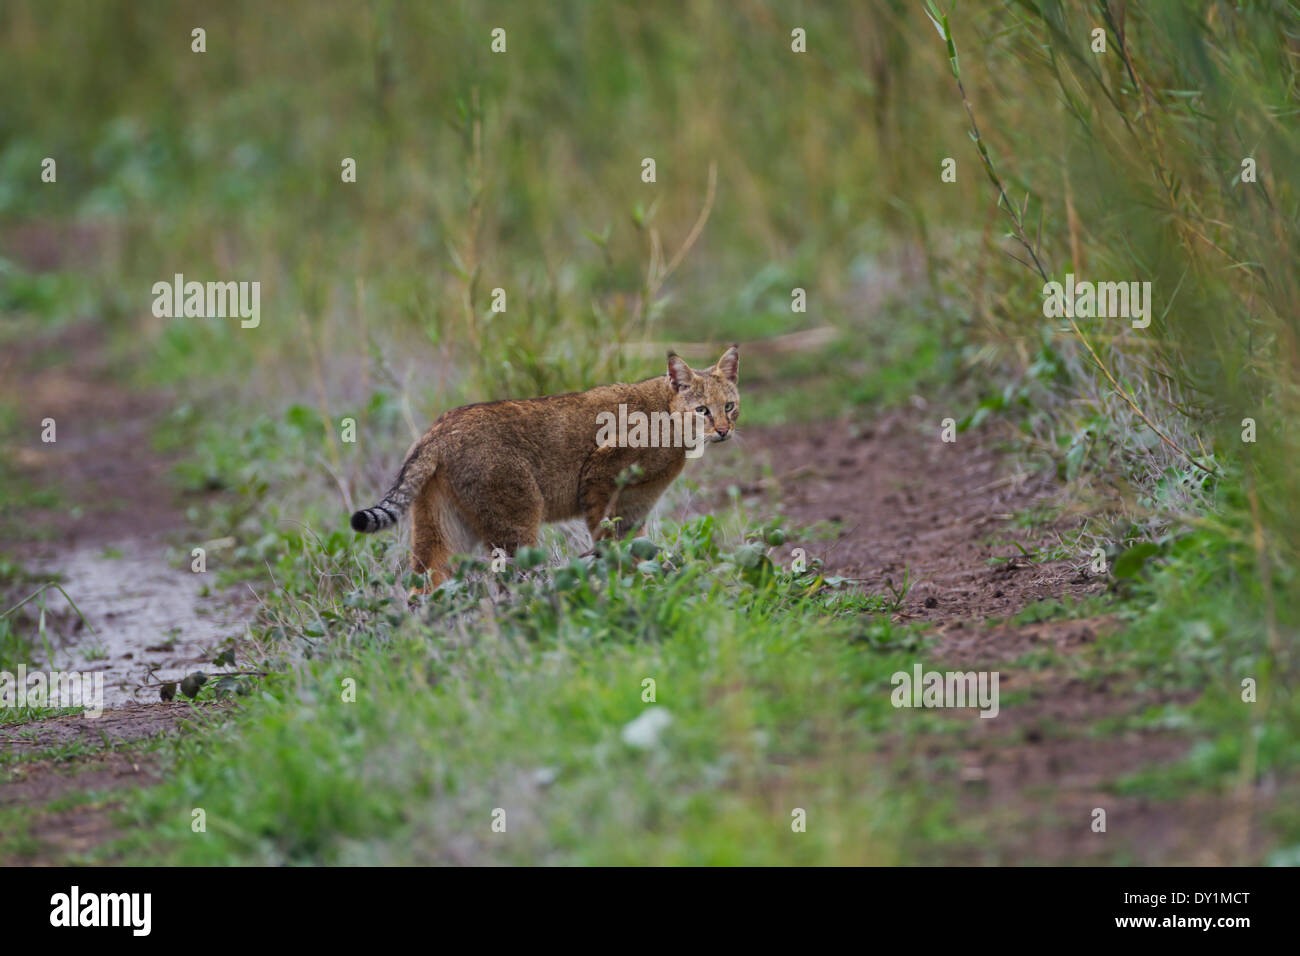 Jungle Cat (Felis chaus) in the wild. Sometimes called Reed Cat or Swamp Lynx. Photographed in Israel in the wild - Stock Image